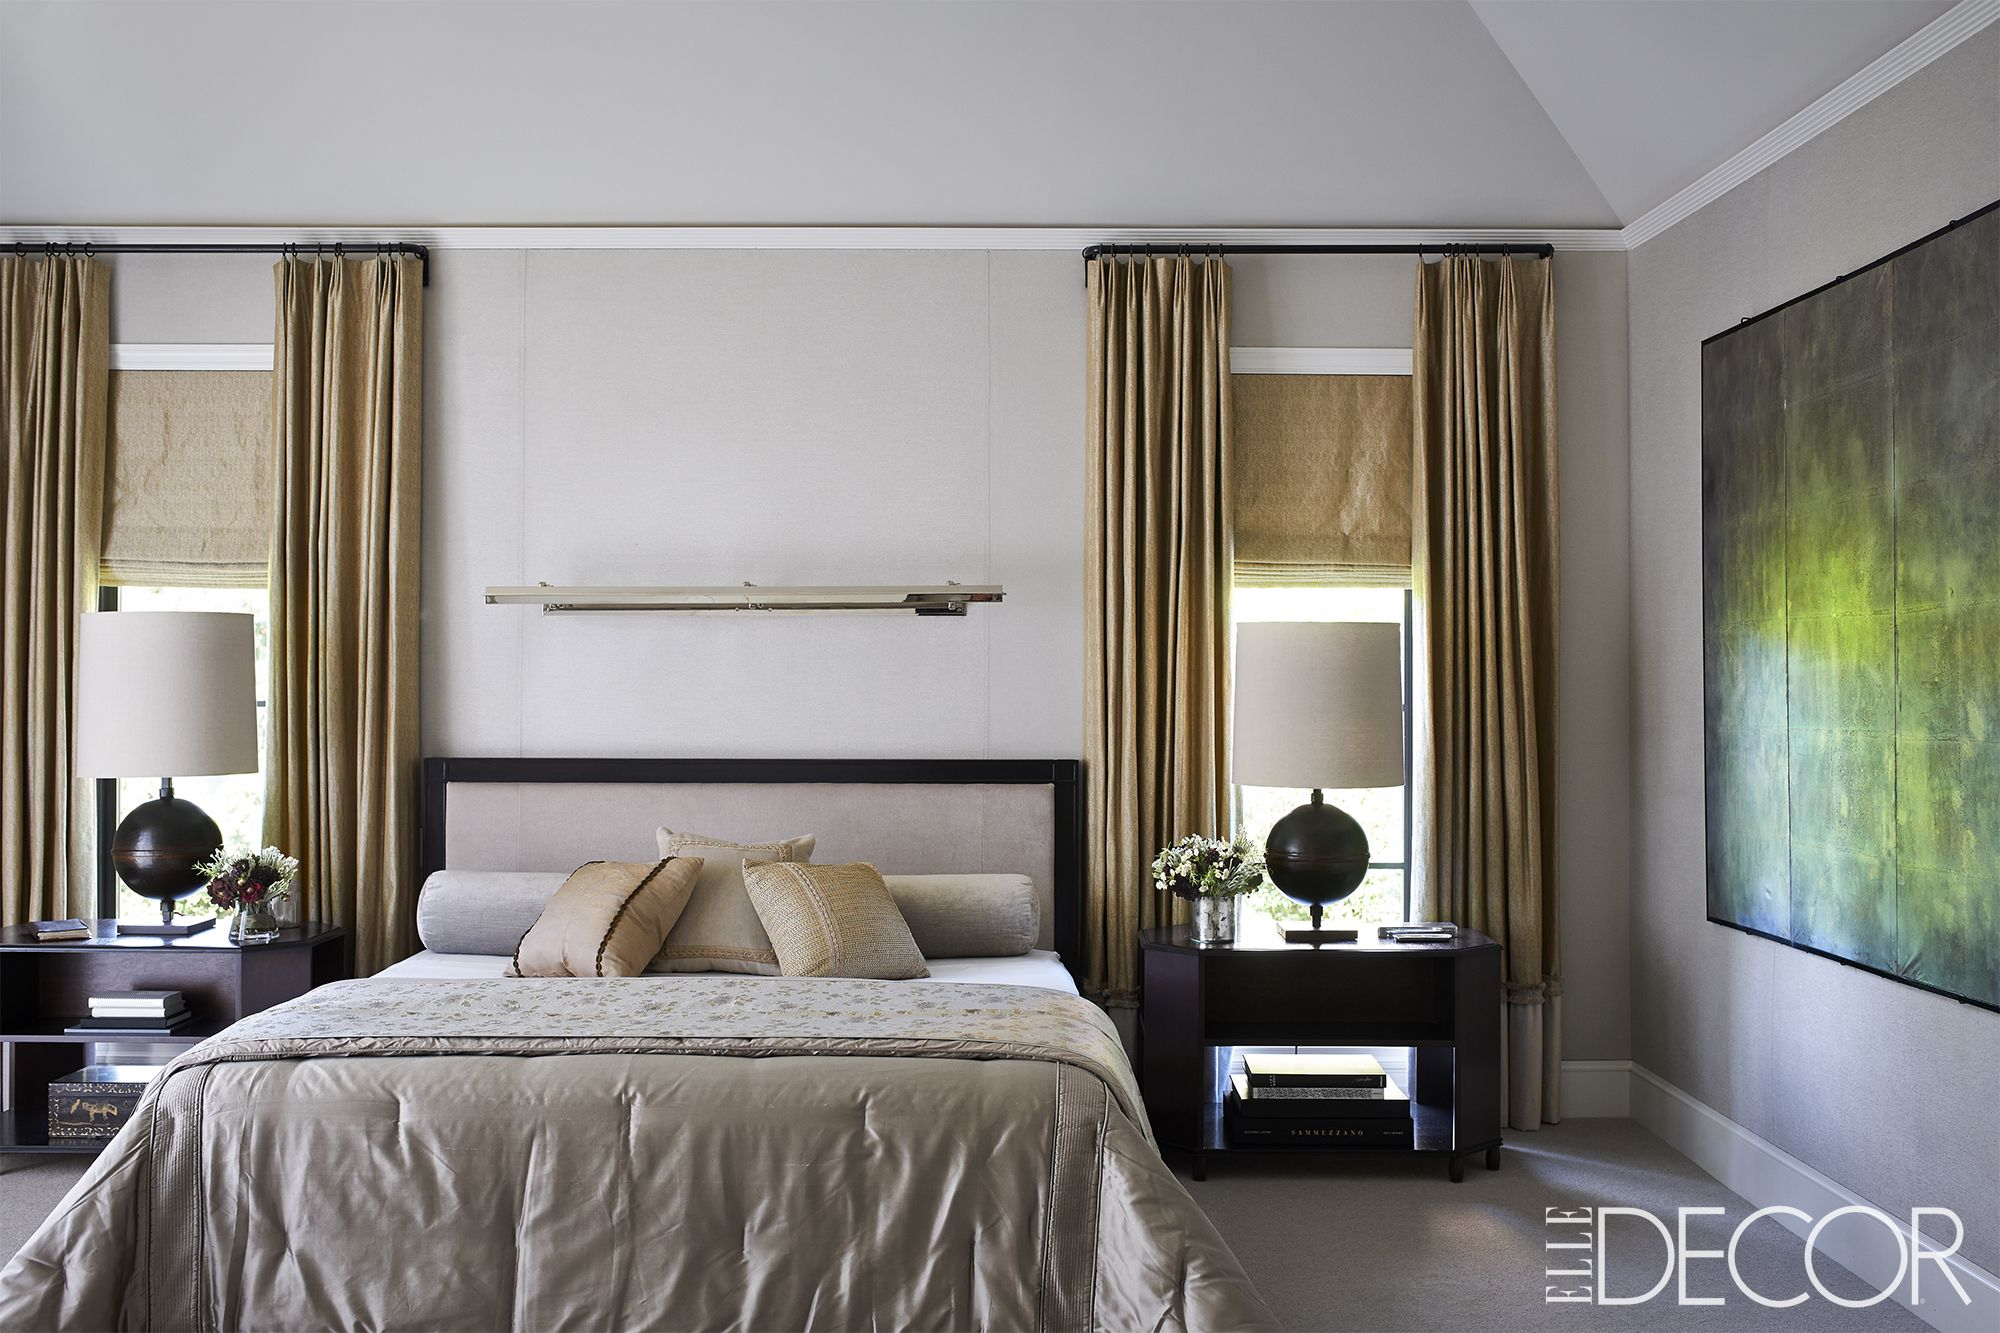 bedroom lighting ideas ceiling. Bedroom Lighting Ideas Ceiling Elle Decor